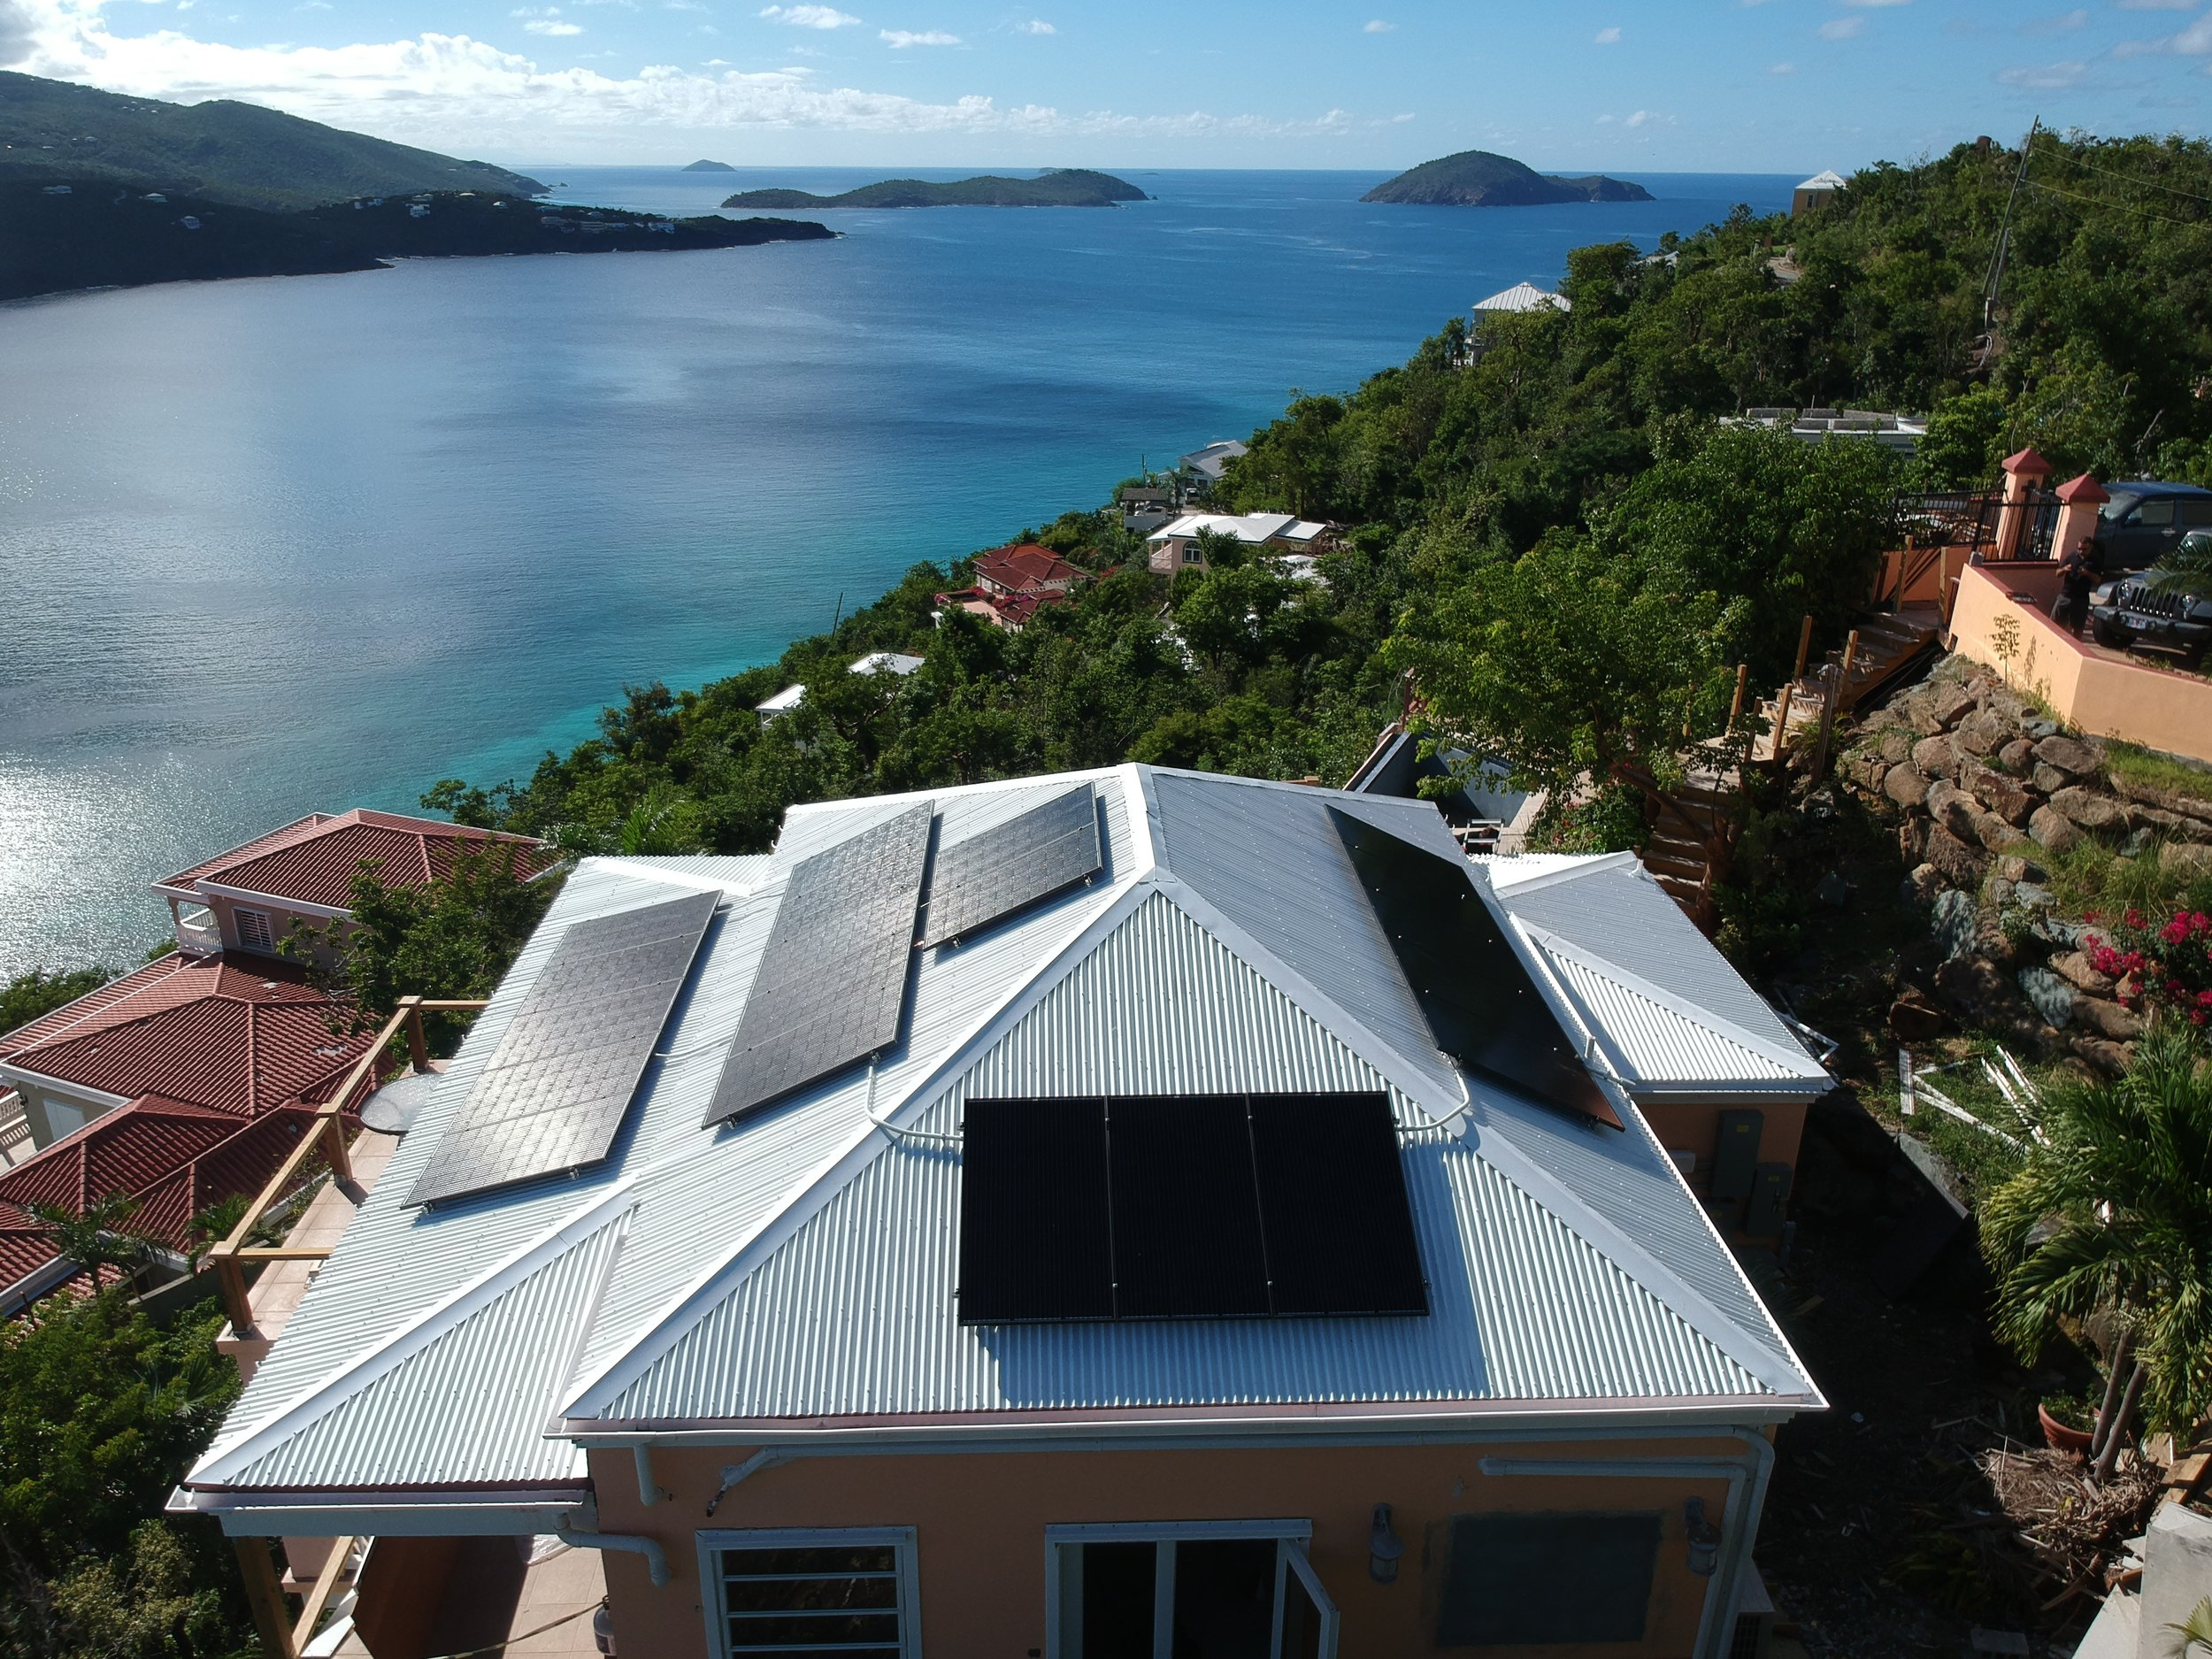 6kW Solar Array with 2 Tesla Powerwalls - 100% Self-Powered Villa in Magens Bay St. Thomas